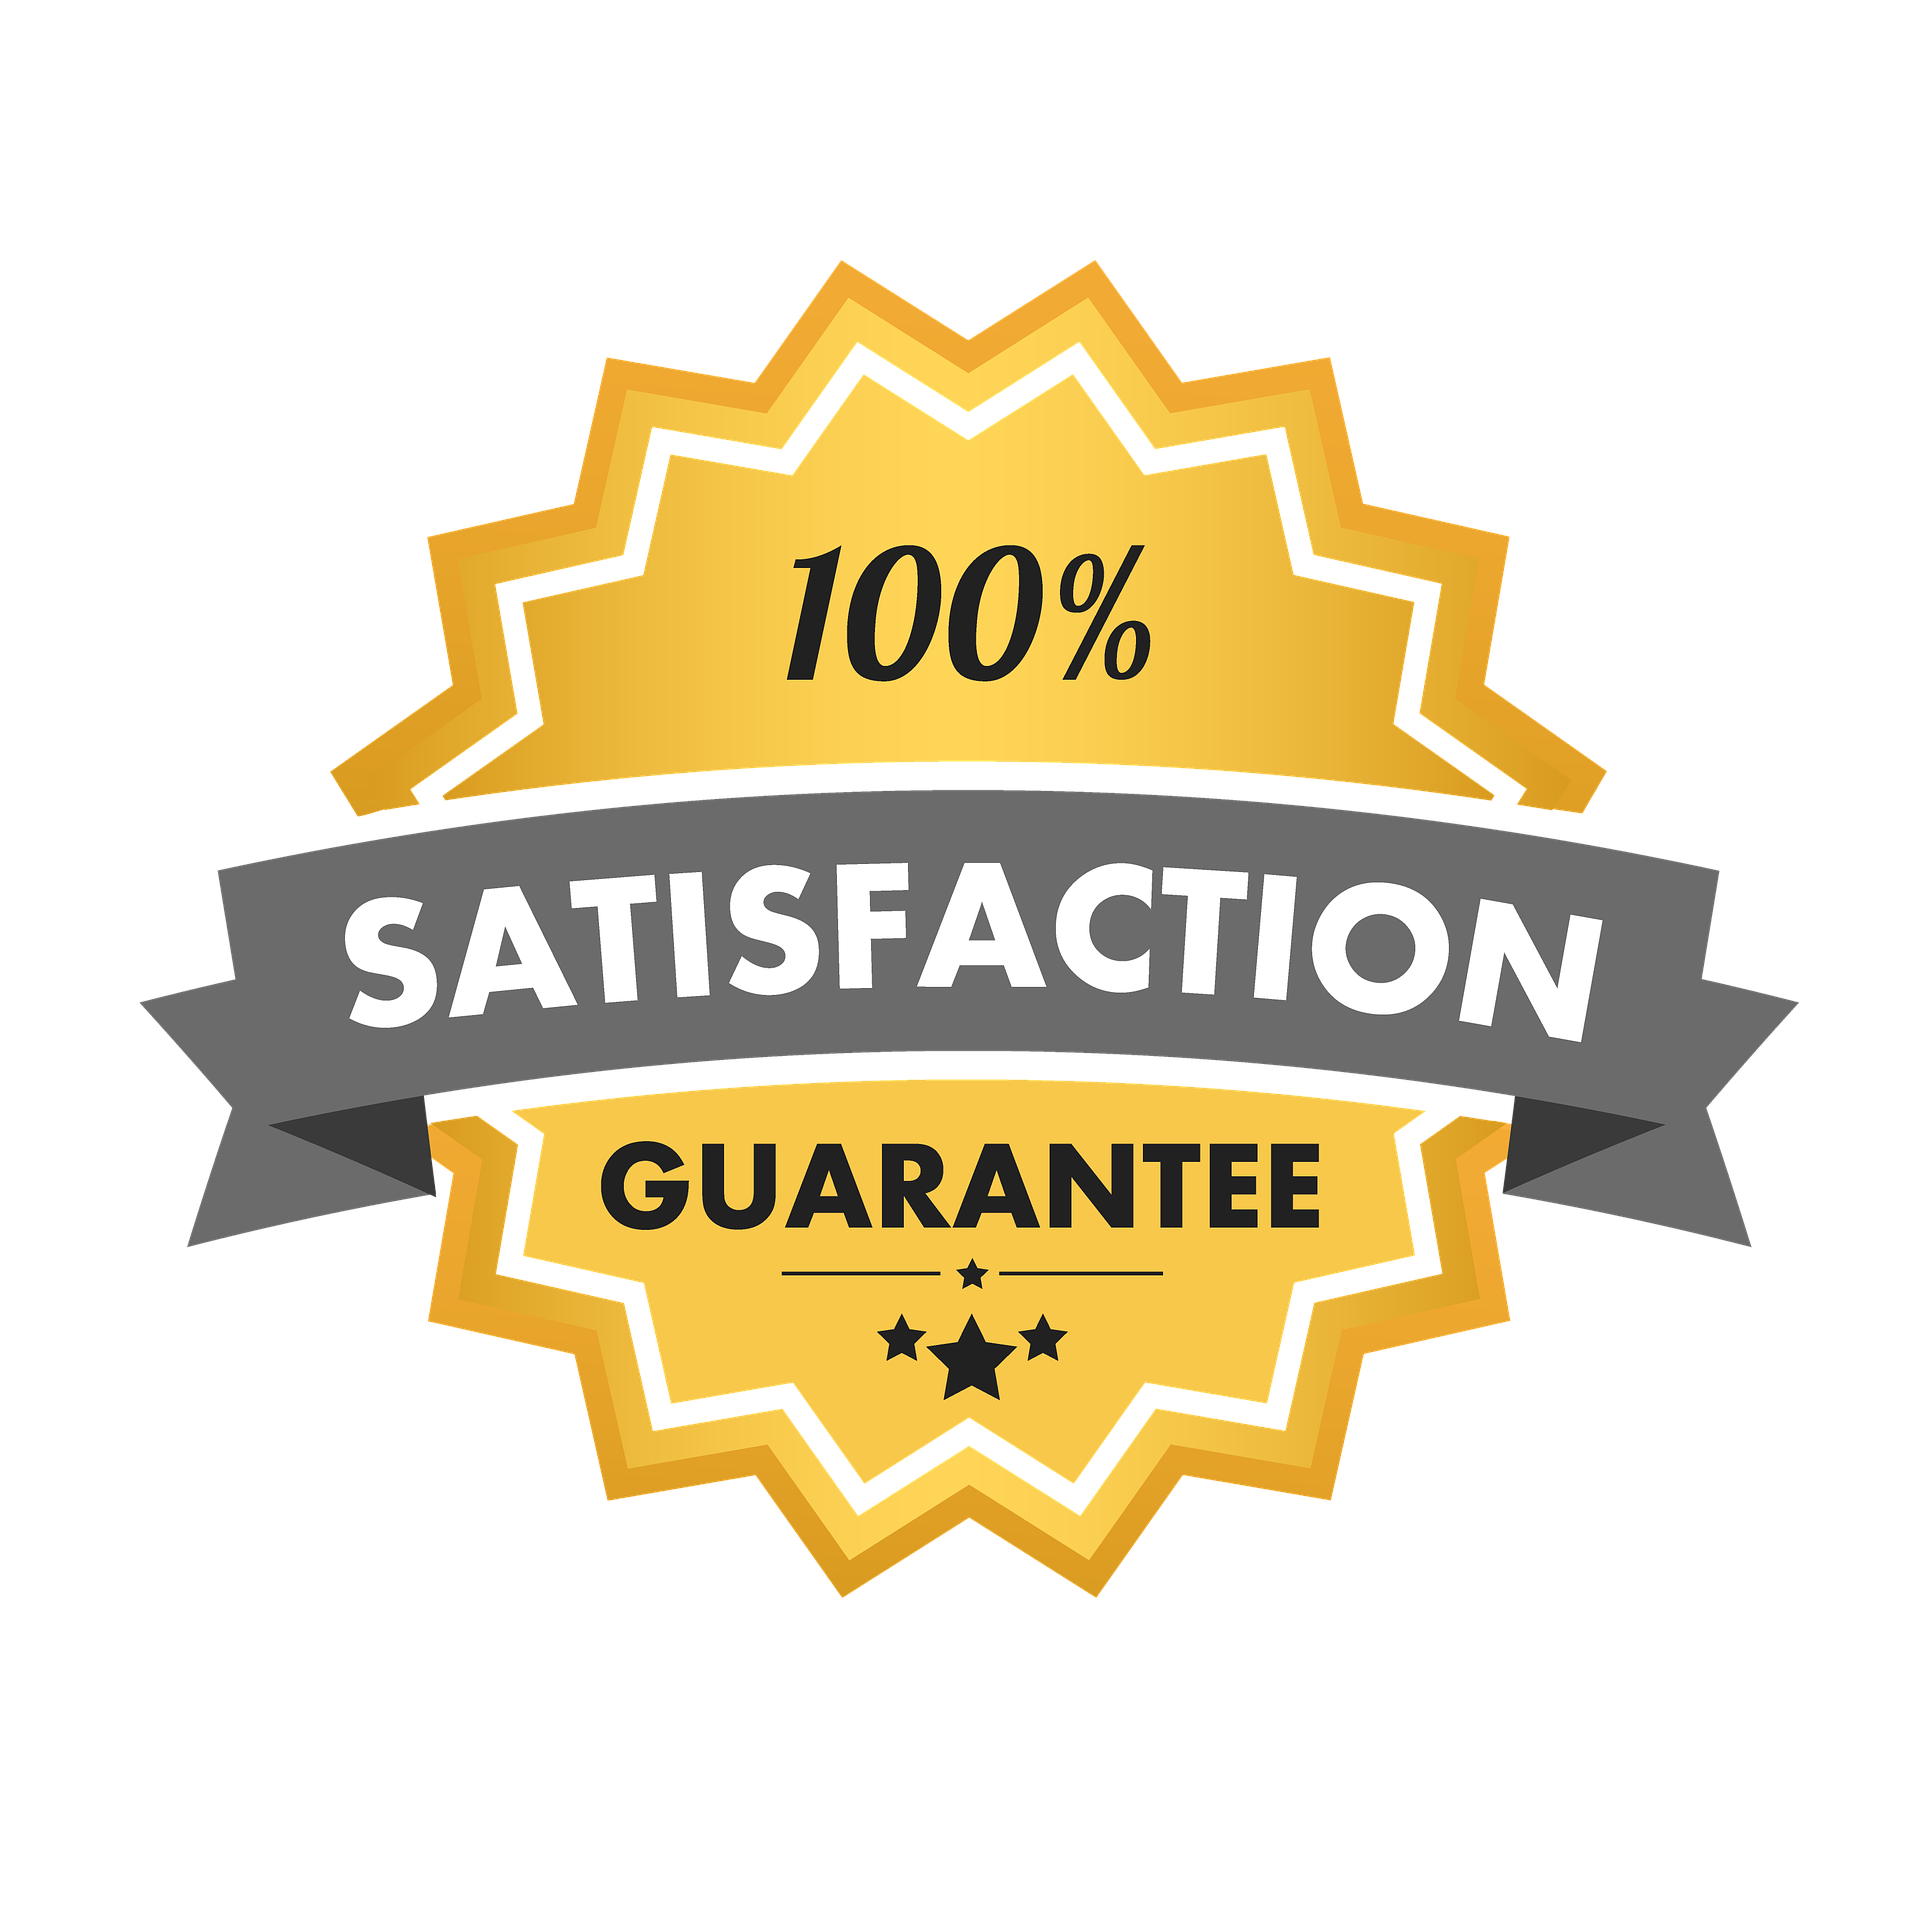 "Satisfaction Guarantee - ""A guarantee is only as good as the company that stands behind it."" We back up our work 100%. We want 100% satisfaction! We will let you know up front what we can and cannot promise. If for any reason we need to correct anything that was promised or expected, we will promptly return with no hassles. We can make such a bold guarantee because, quite frankly, we know what we are doing and do it well."